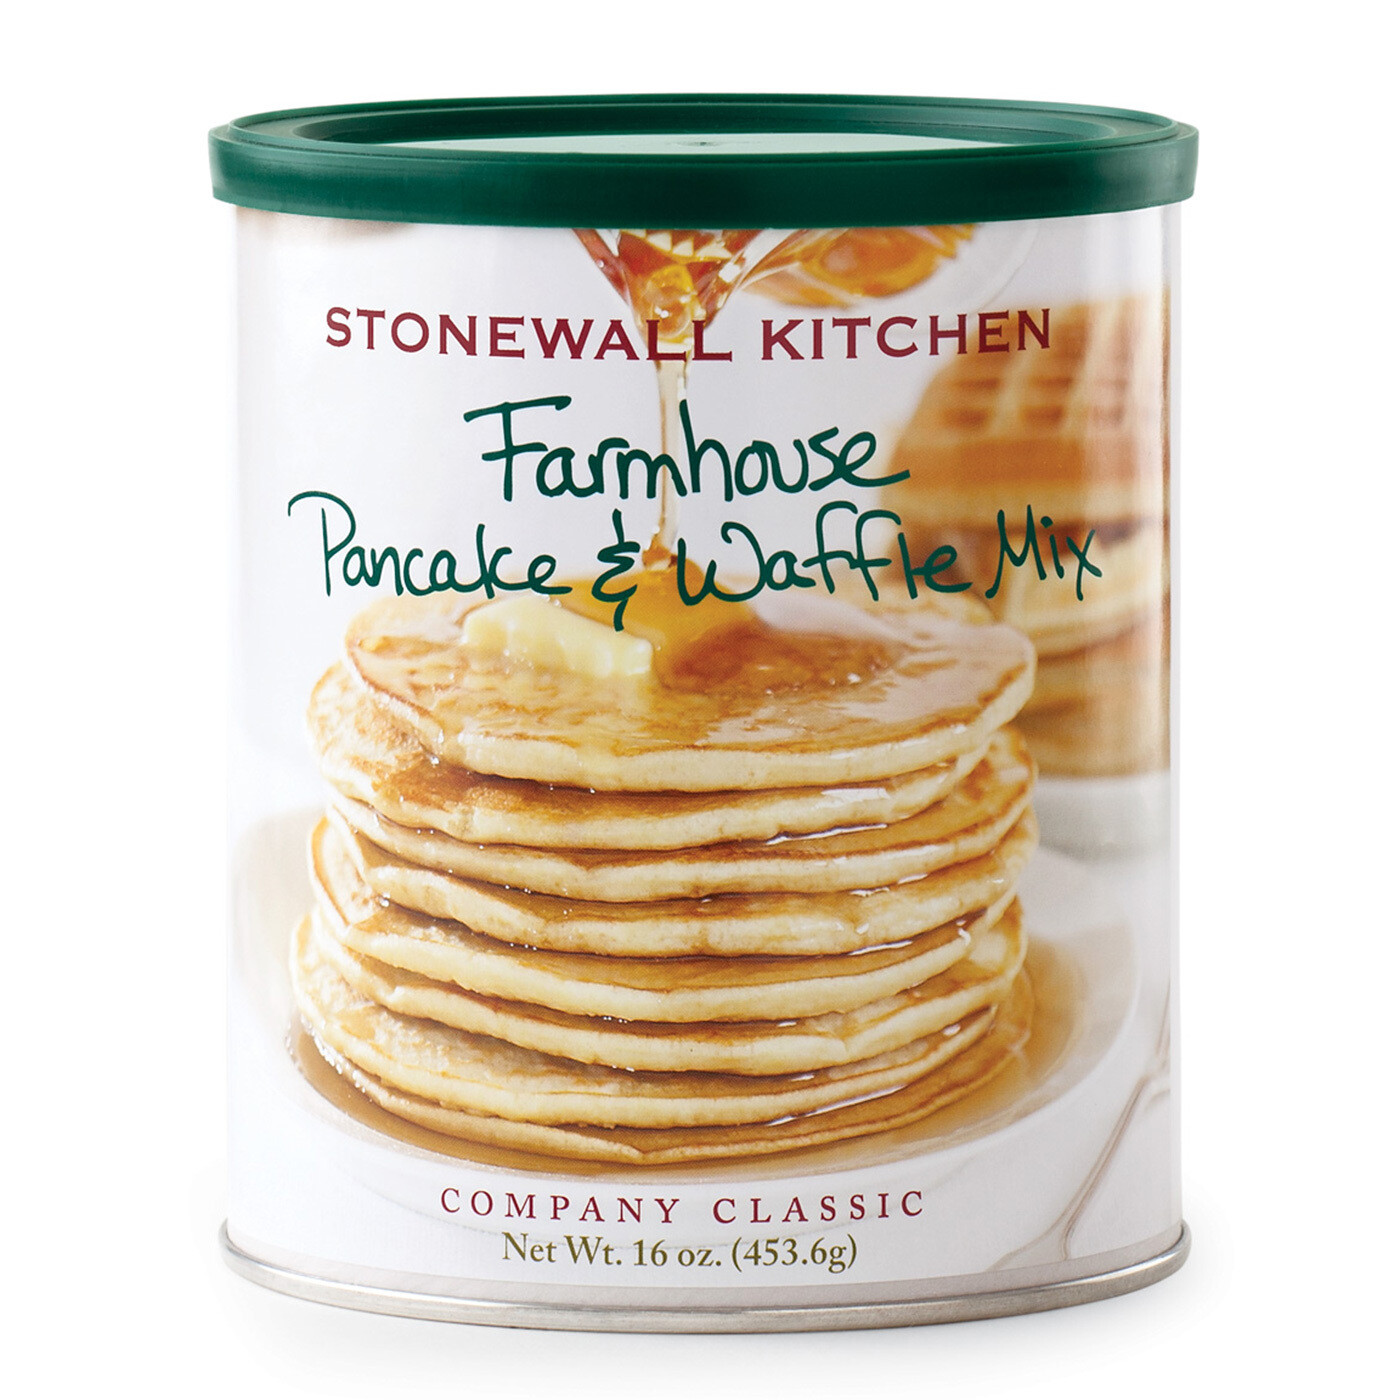 Farmhouse pancake small